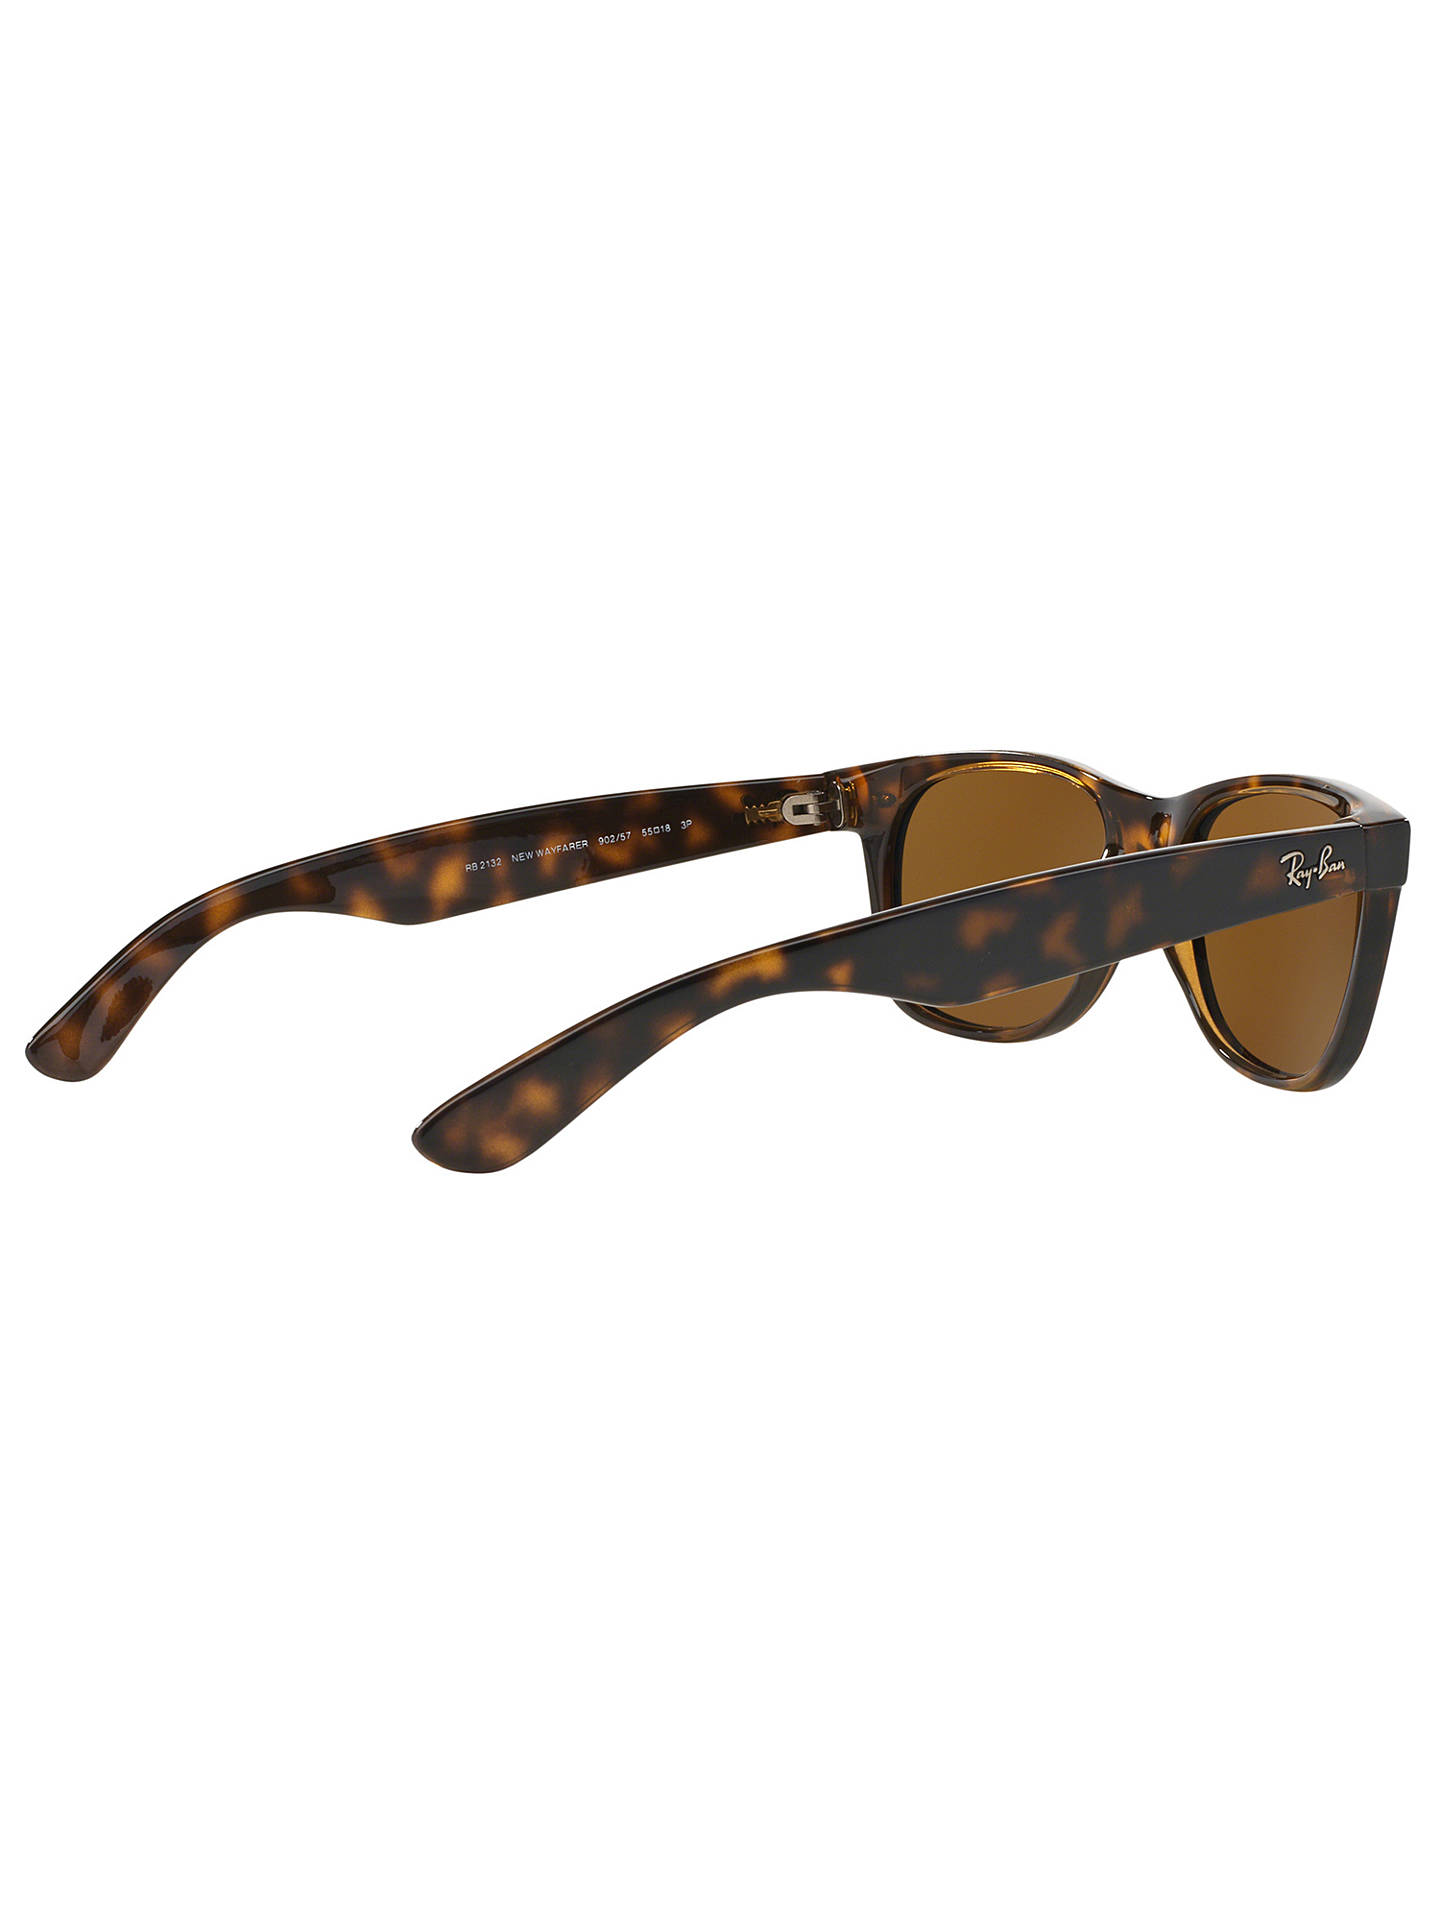 13d12155b0 ... Buy Ray-Ban RB2132 New Wayfarer Polarised Sunglasses